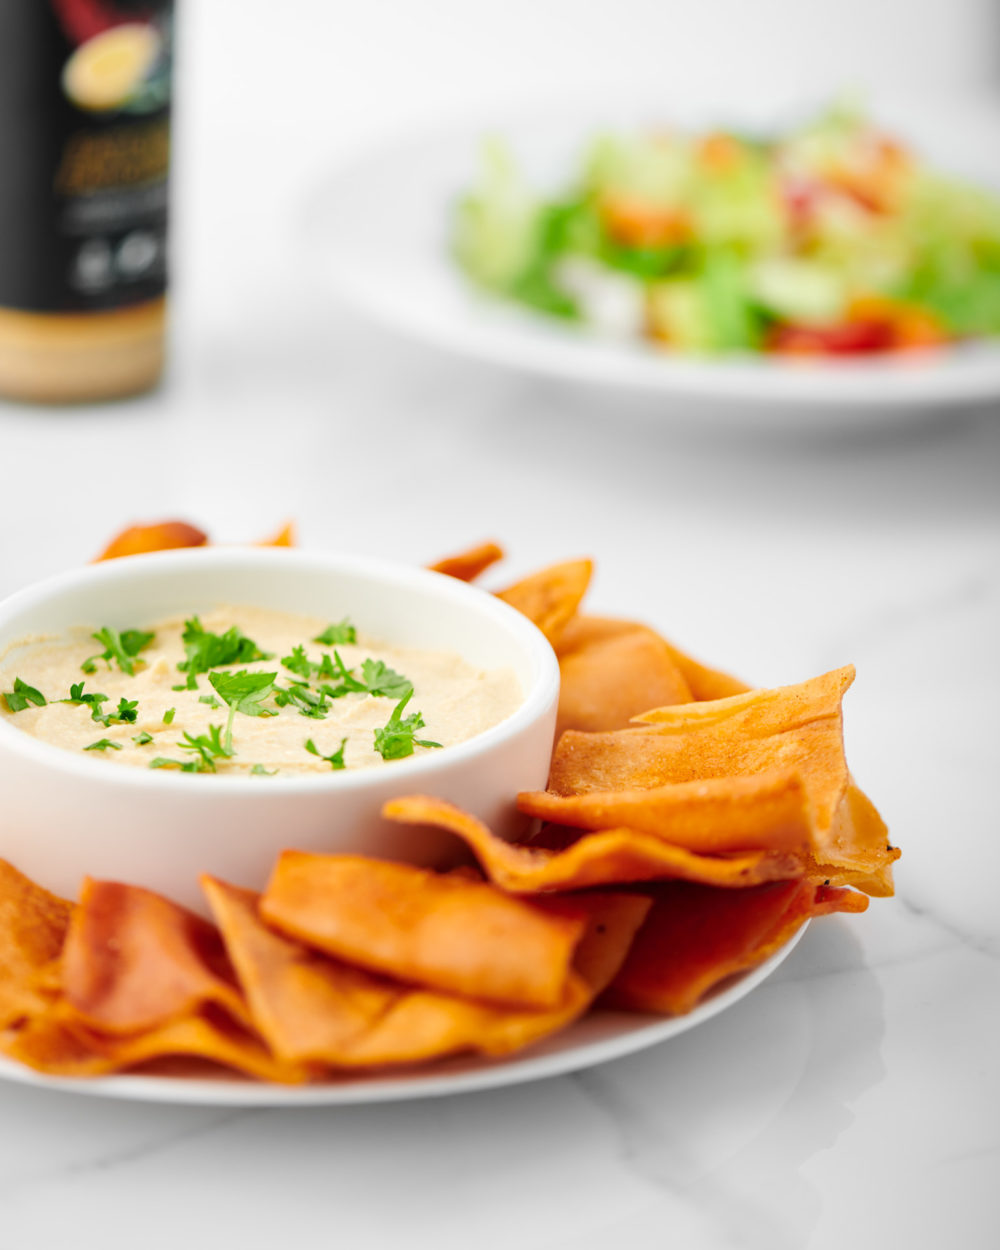 Food photography of Cedar Valley Selections pita chips with homemade hummus dip by Brandon Marsh Photography and Food Stylist Laurie Cadman Creative